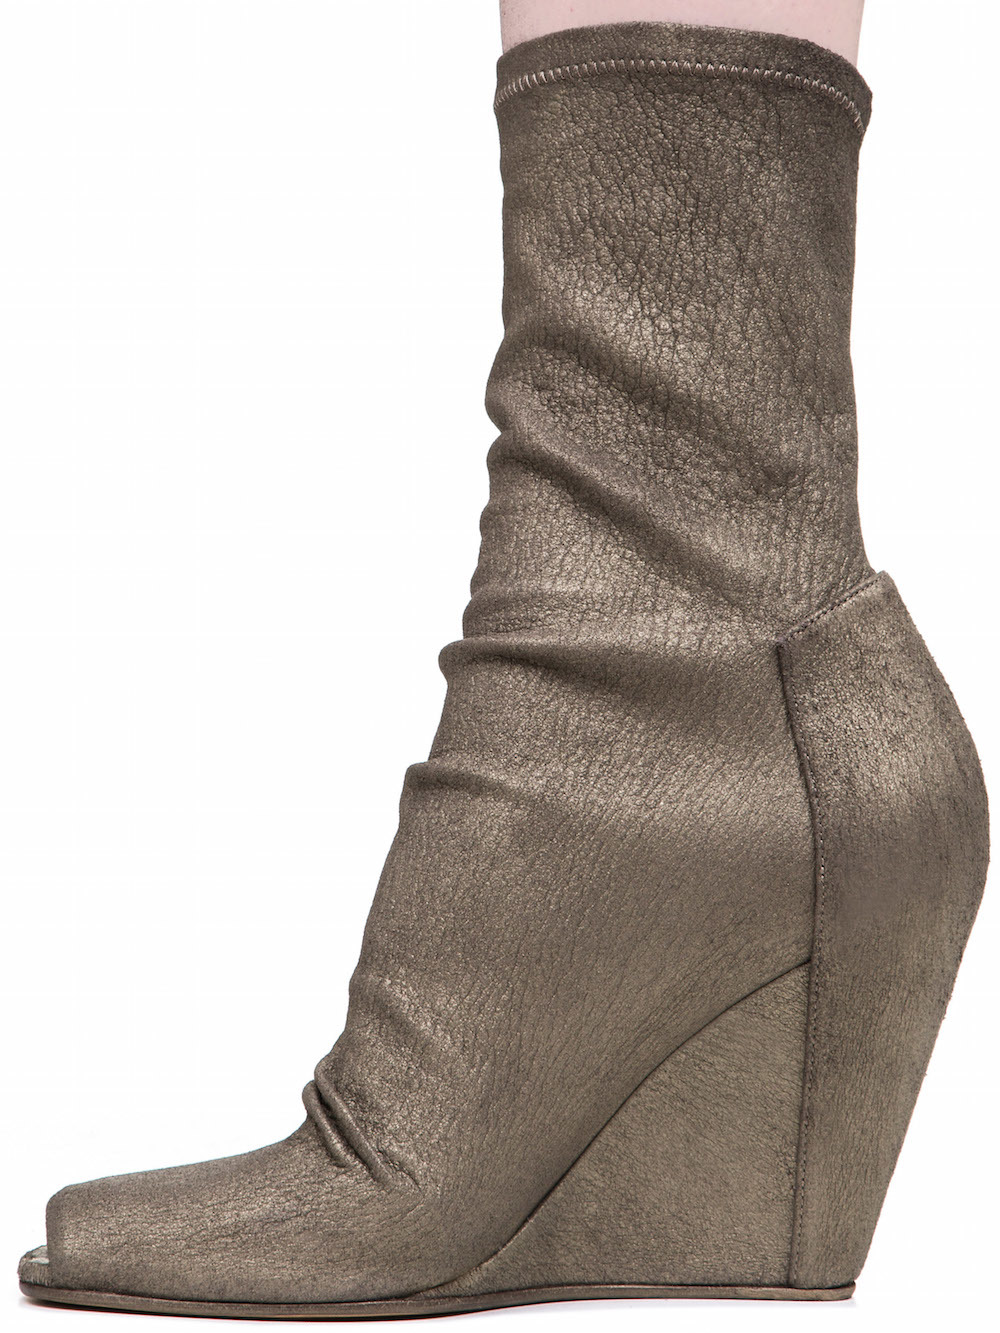 RICK OWENS SOCK WEDGES IN METTALIC DUST GREY STRETCH LAMB LEATHER